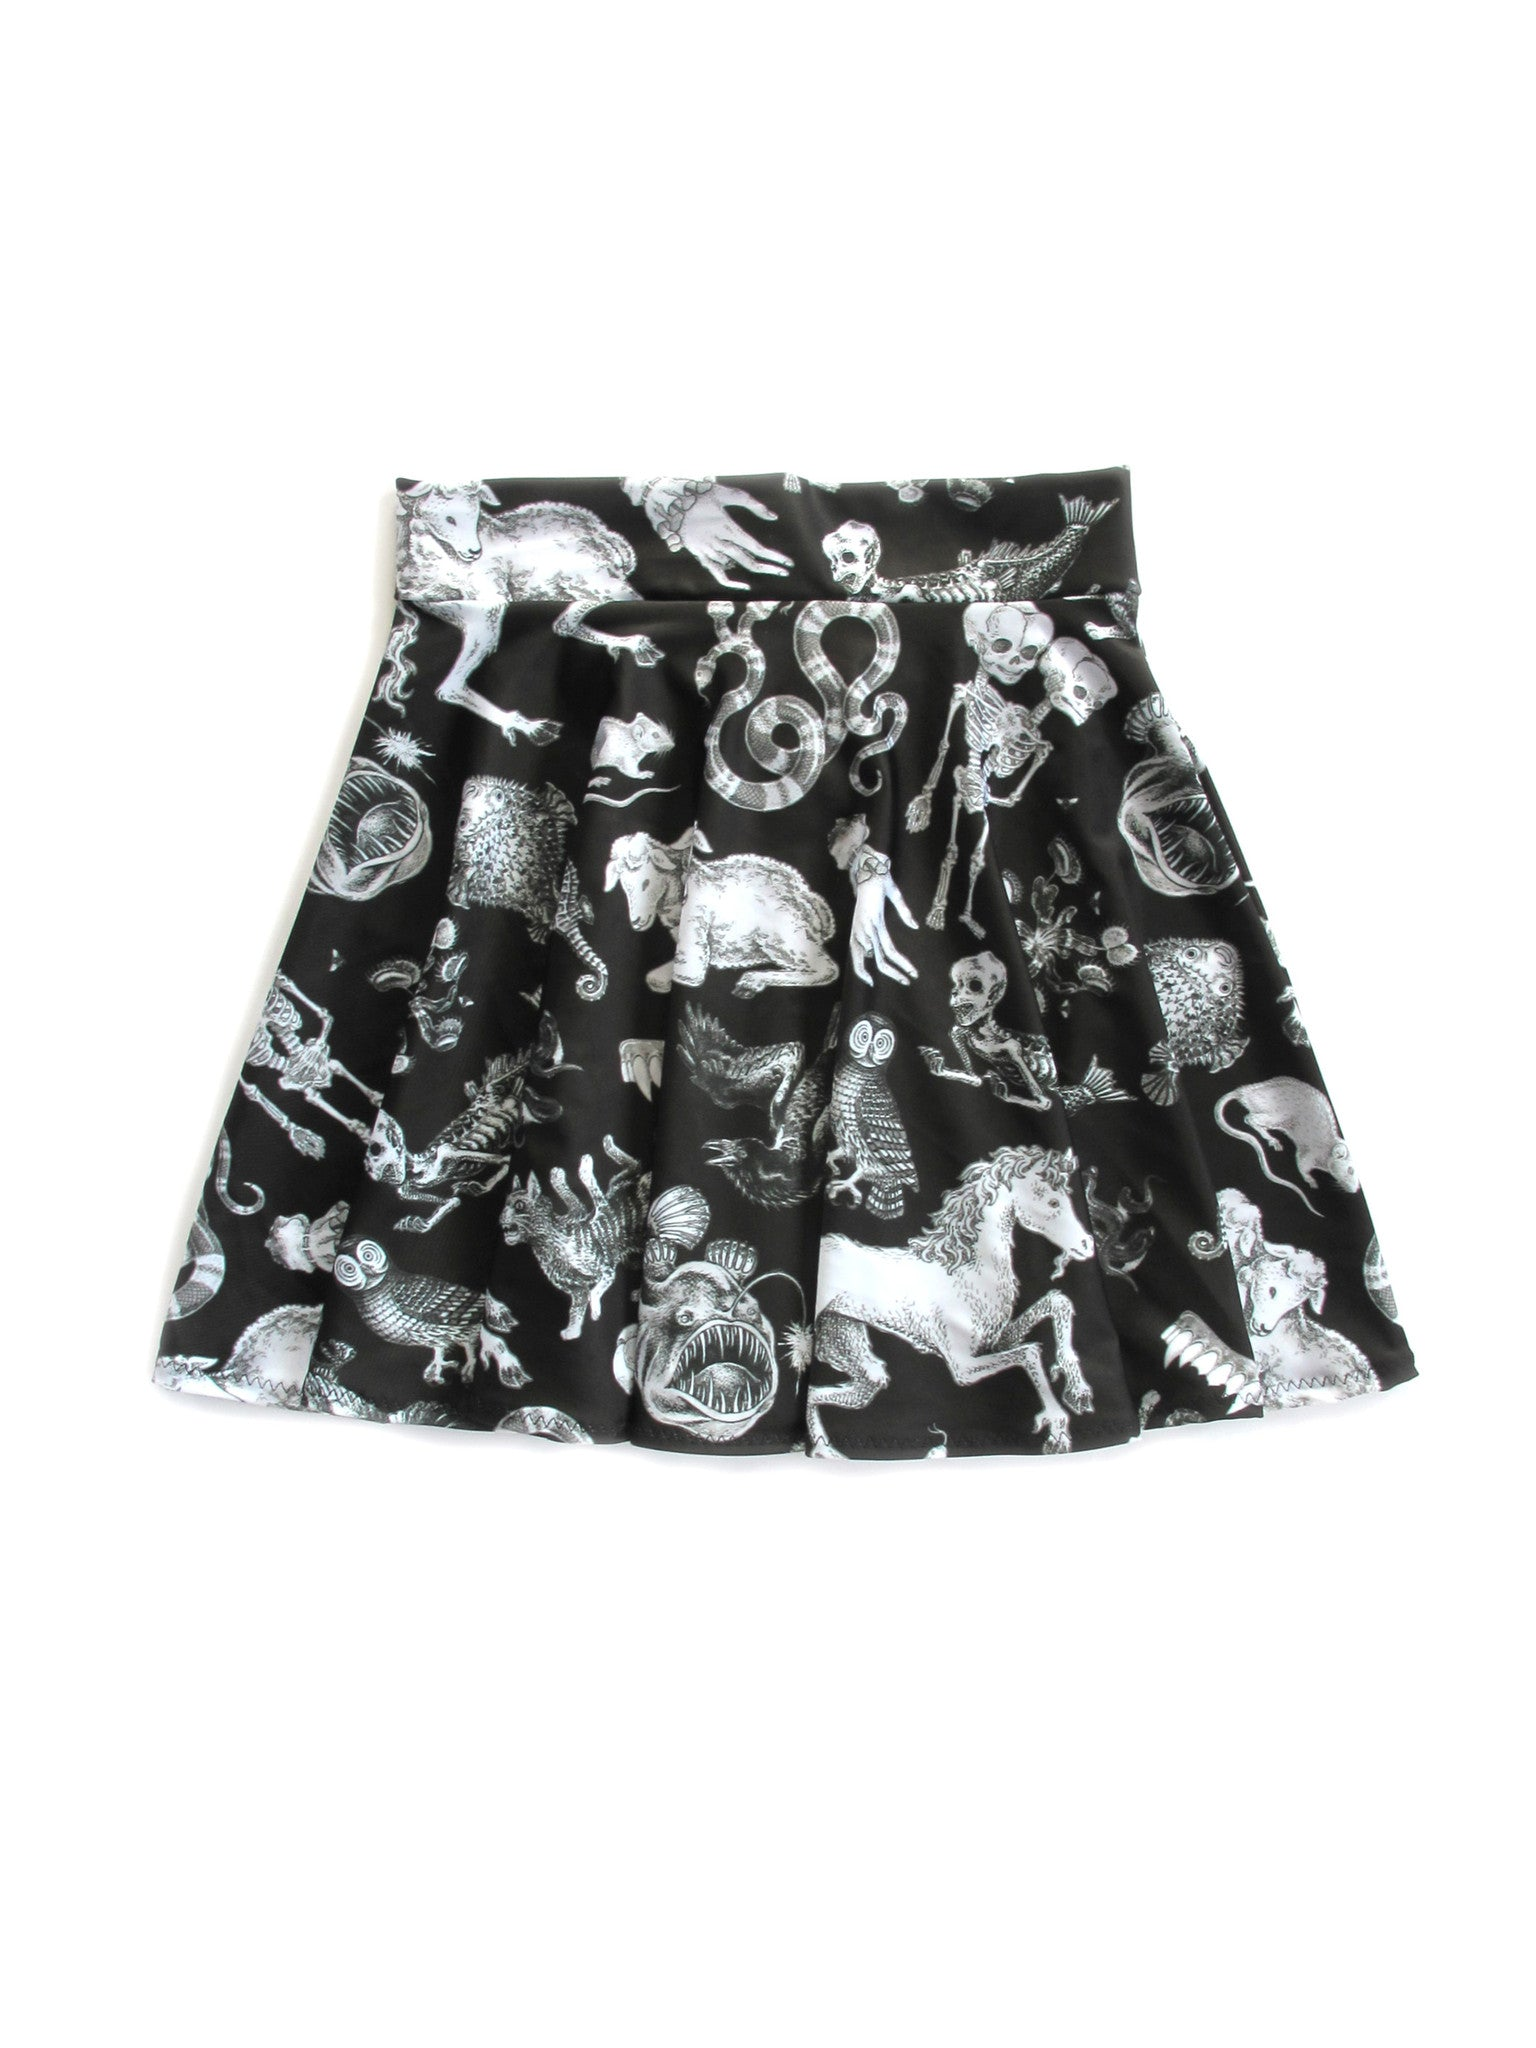 Freak of Nature Skater Skirt in Black